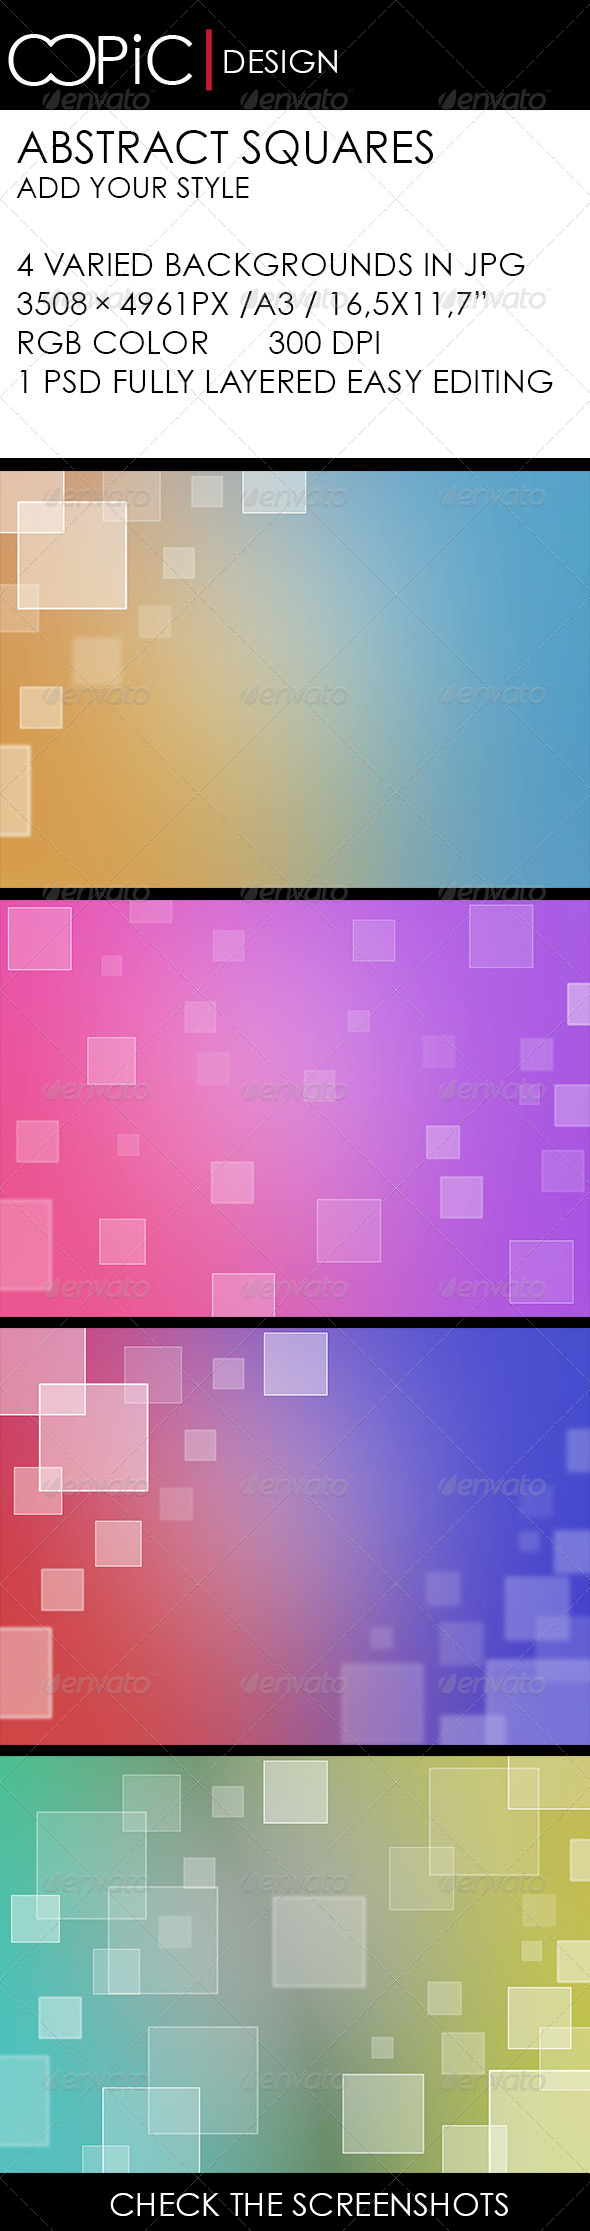 Abstract Squares with Soft Colors - Backgrounds Graphics